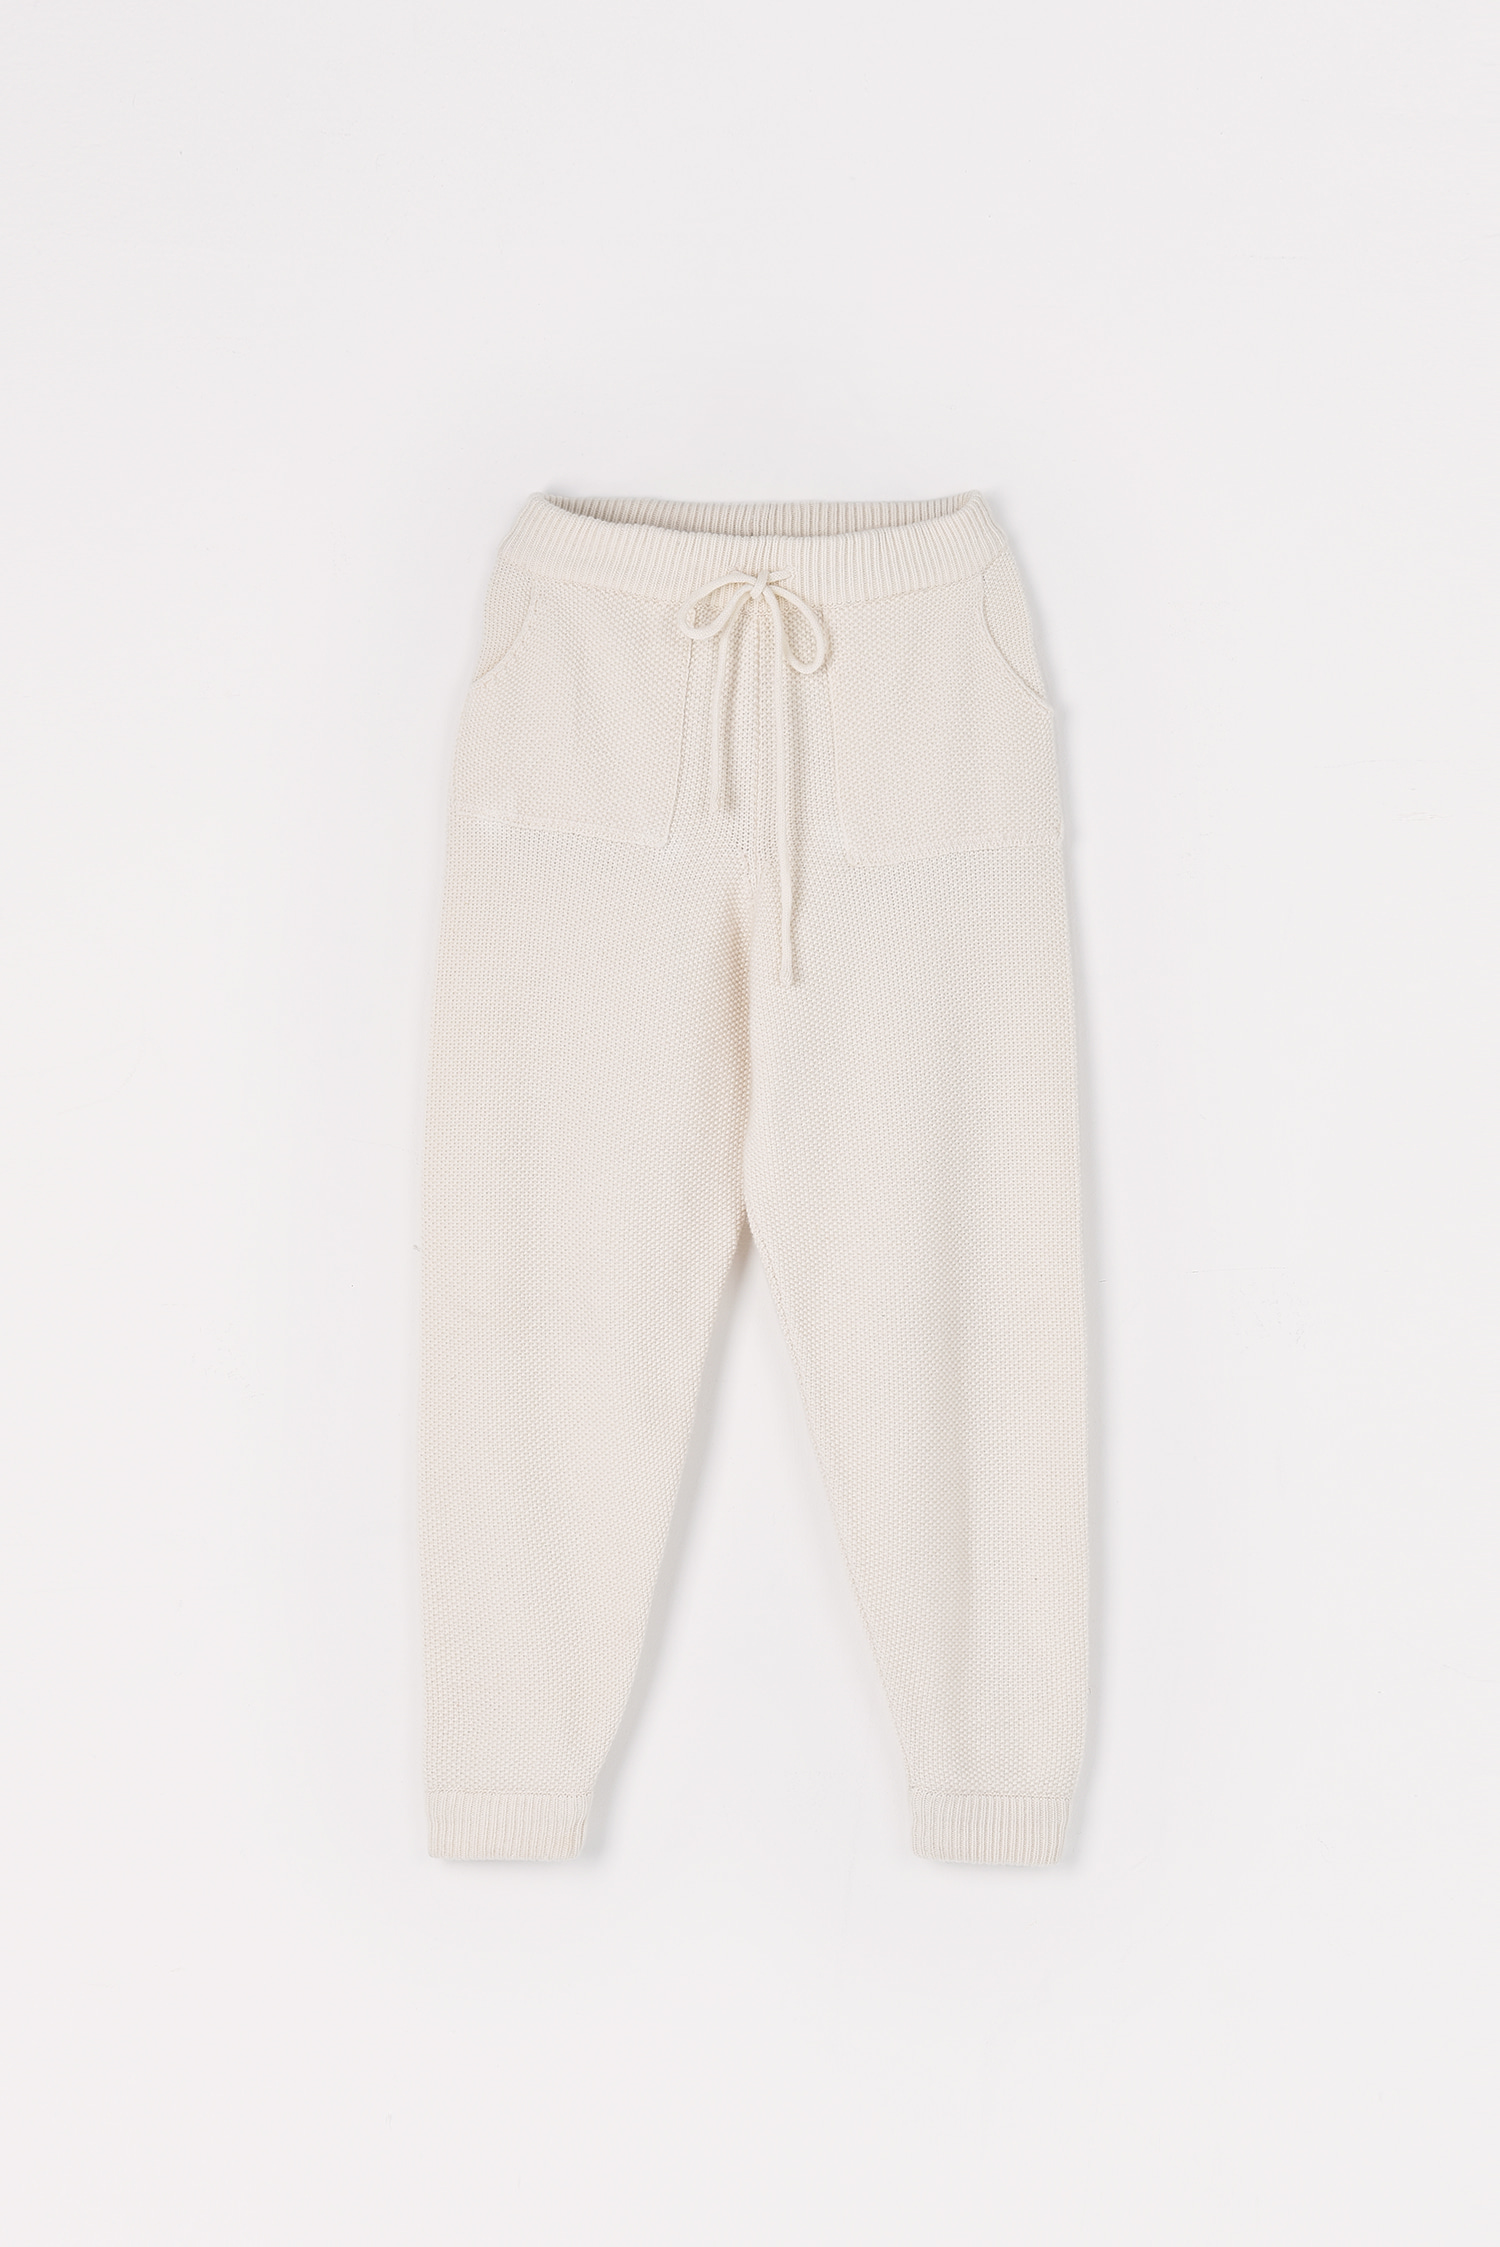 Cashmere knitting pants (Ivory)